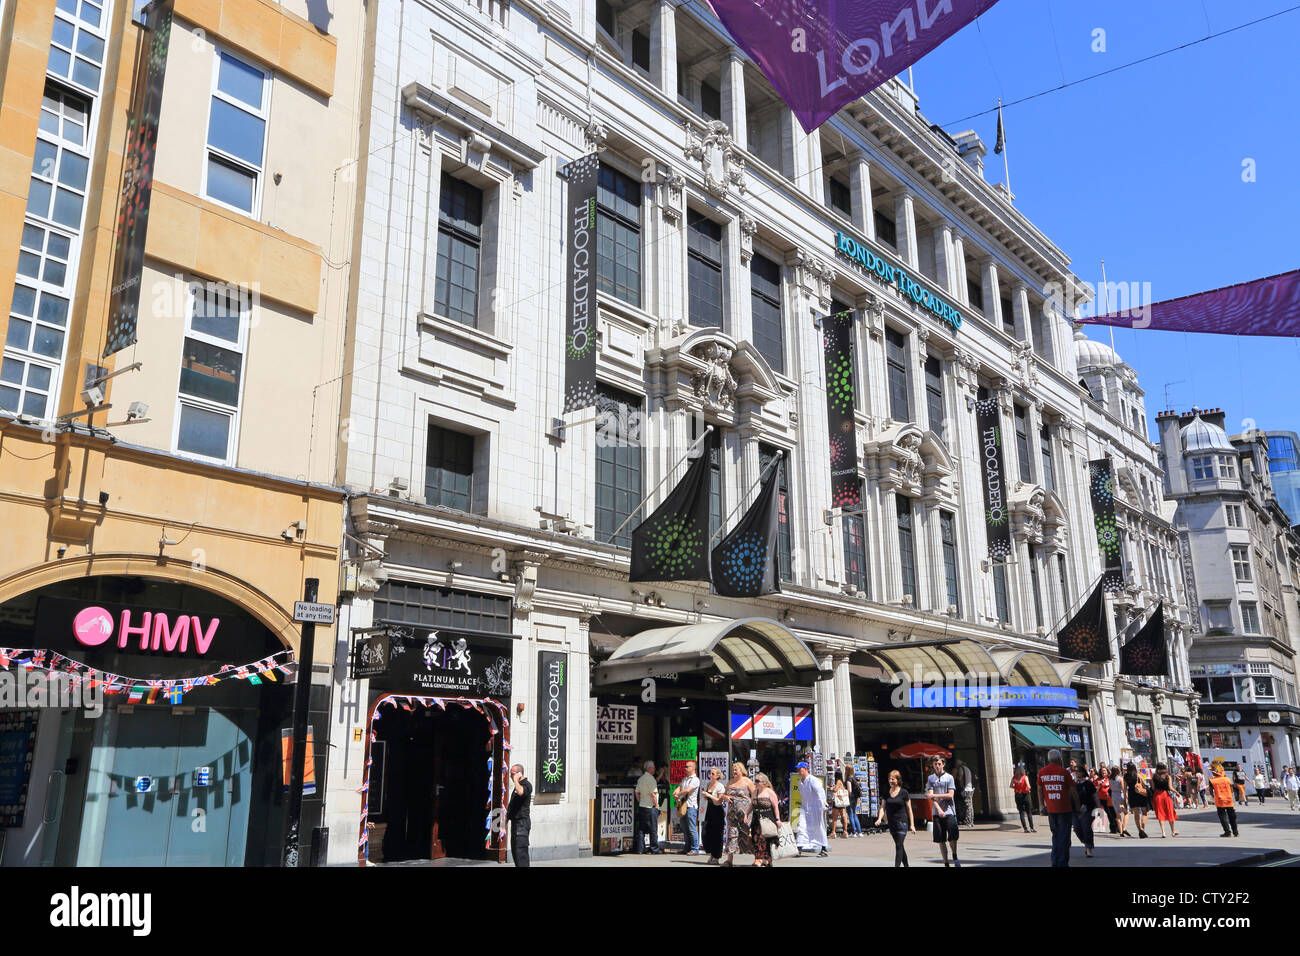 The Trocadero shopping and entertainment centre, on Shaftesbury Avenue, in the West End of London, England, UK - Stock Image